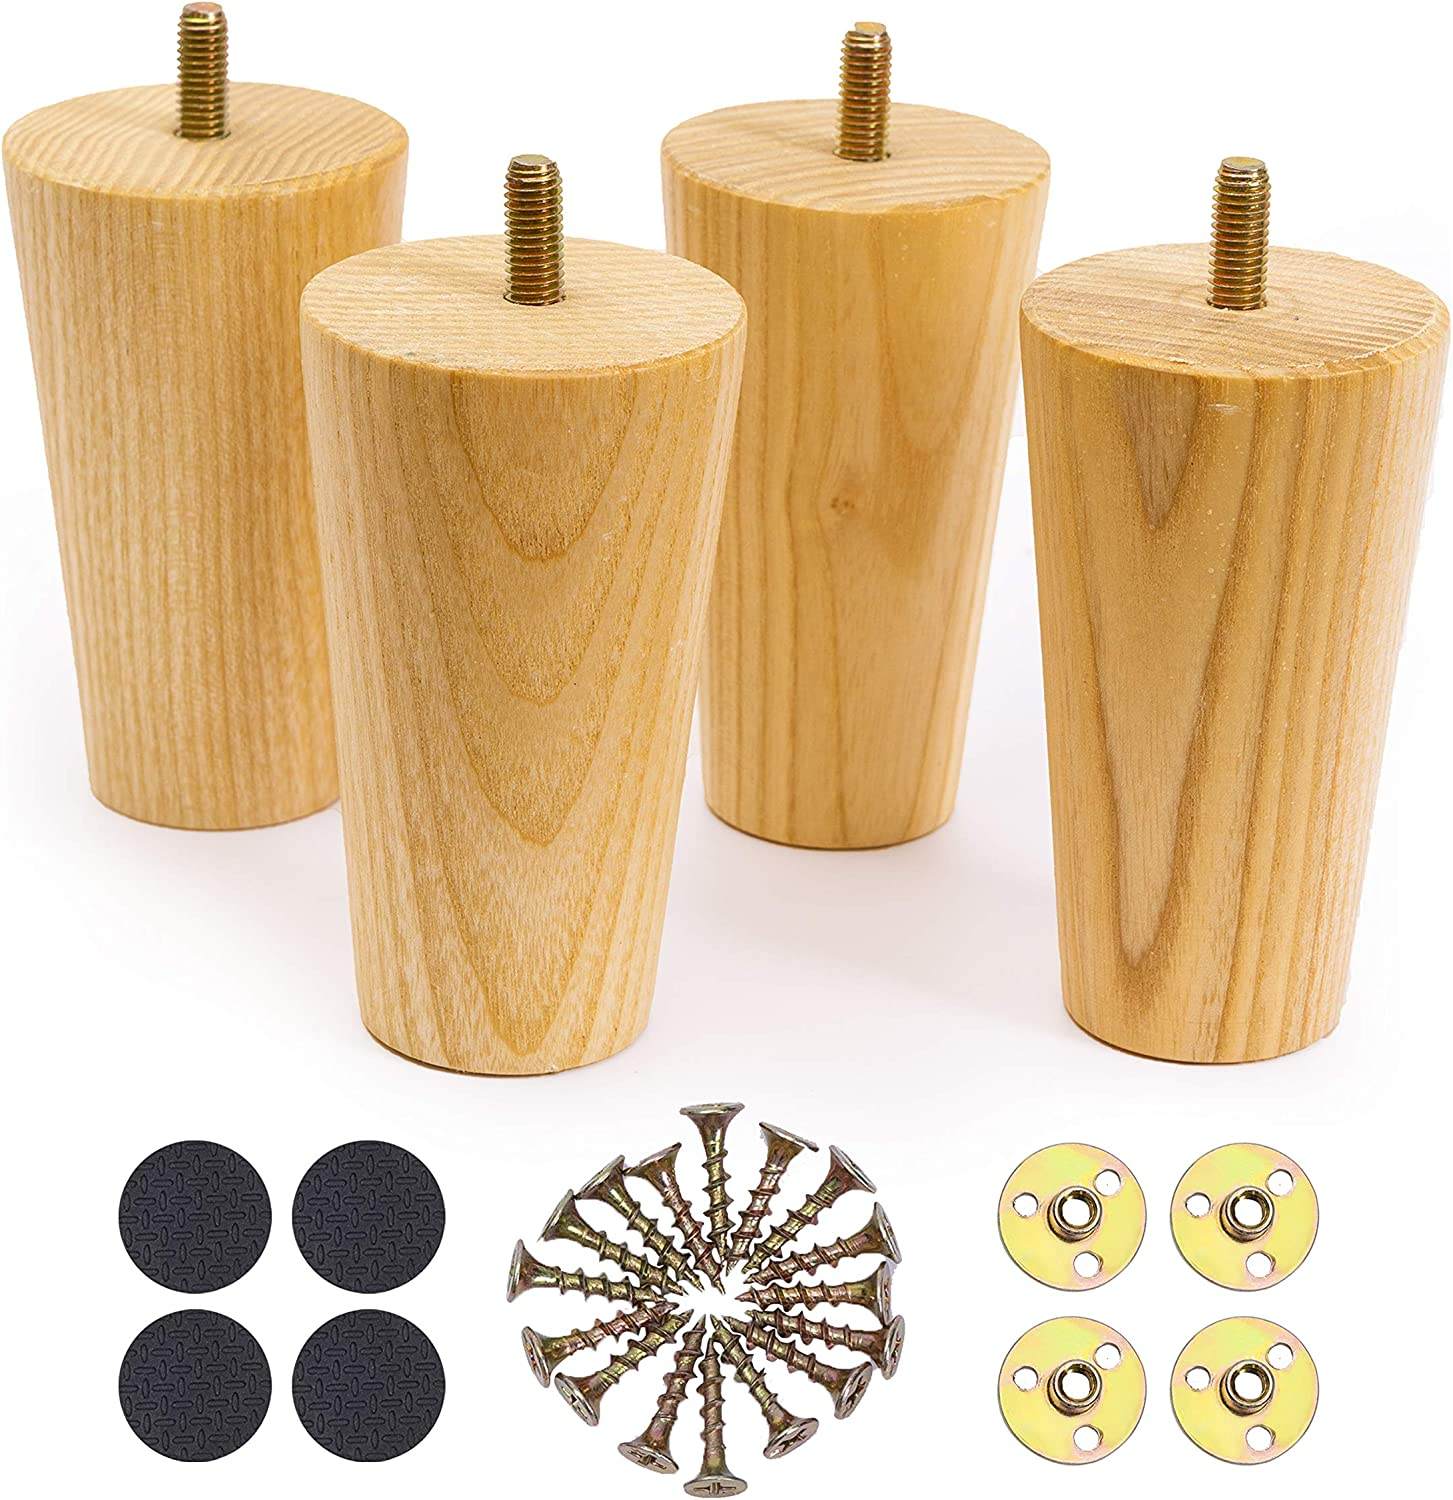 WOODINNO Furniture Leg 4 Inch Replacement for Mid Century Table Dresser, Desk, Couch, Chair Cabinet Sofa Round feet Cabinet- Unfinished